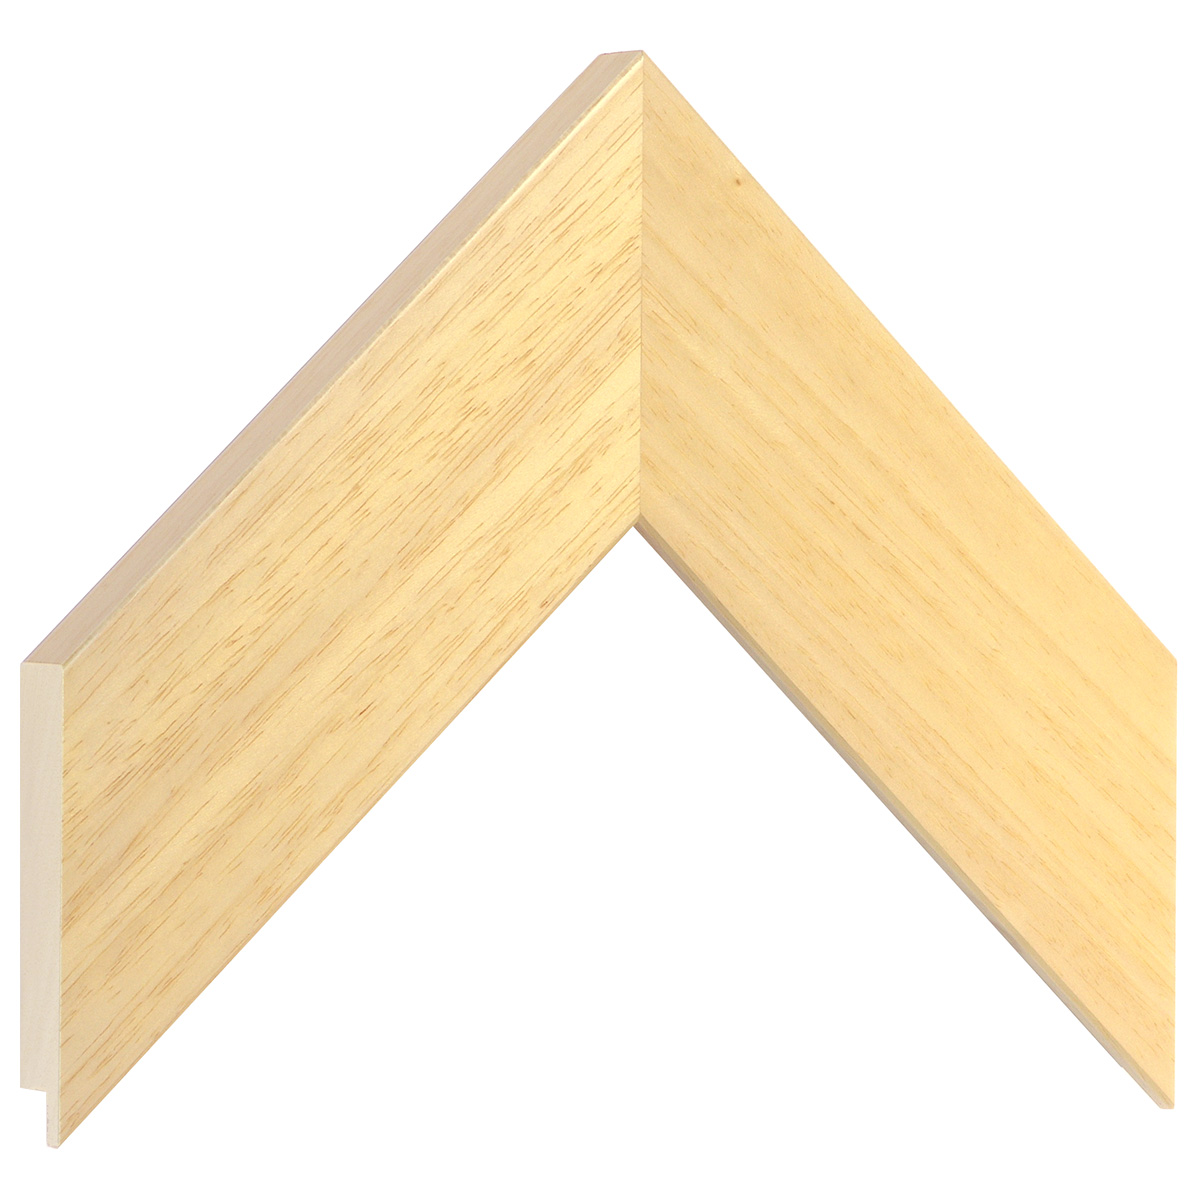 Moulding ayous, width 58mm height 20 - natural wood